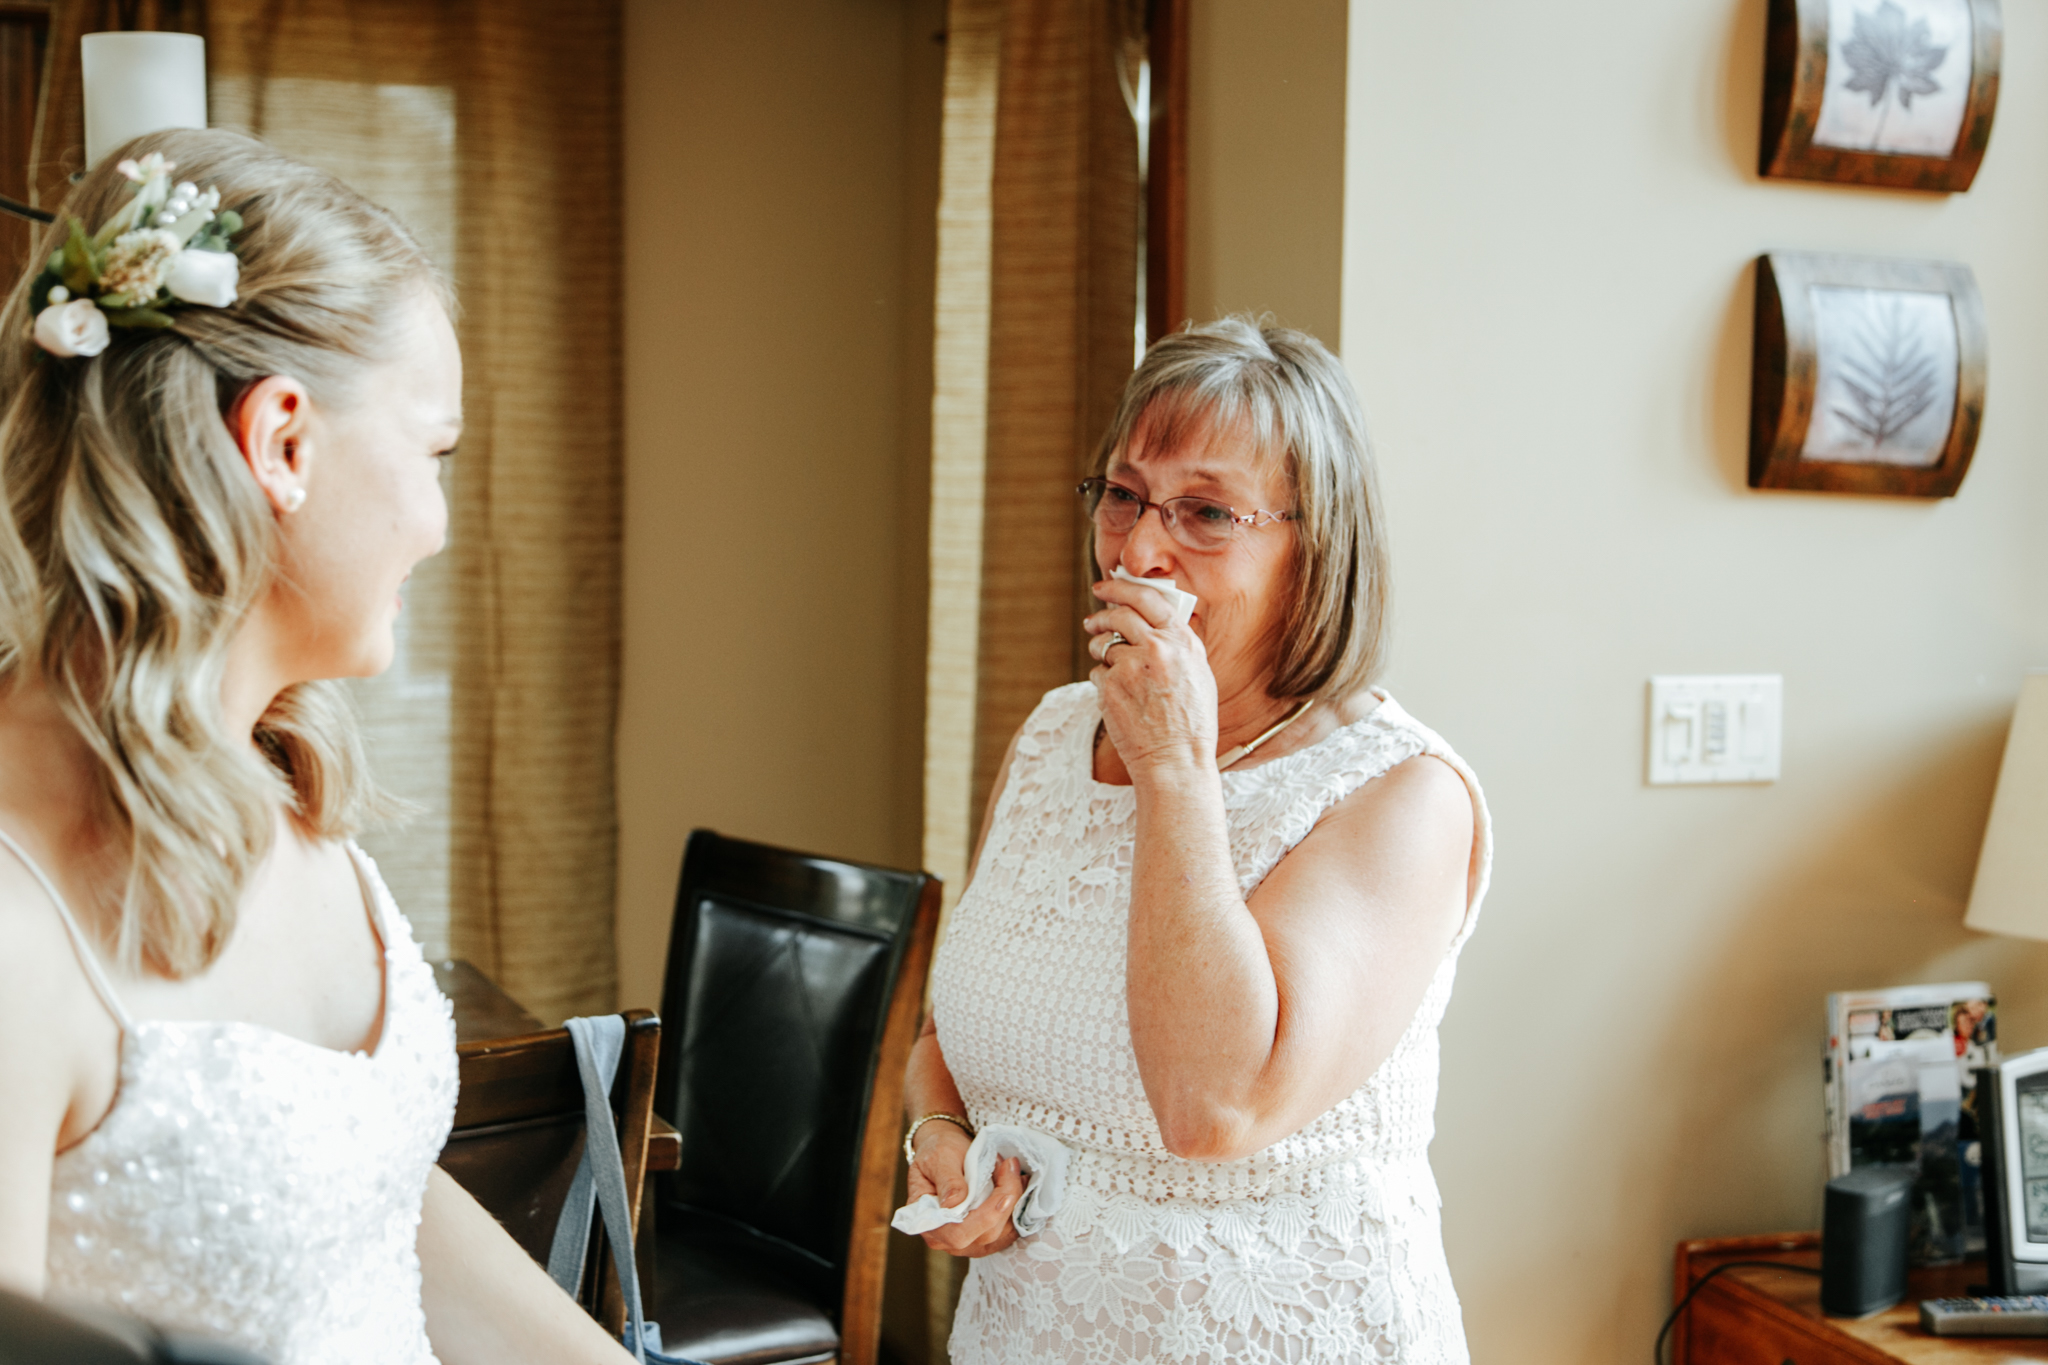 castle-mountain-wedding-photographer-love-and-be-loved-photography-lethbridge-pincher-creek-crowsnest-pass-yannick-rylee-photo-image-picture-26.jpg